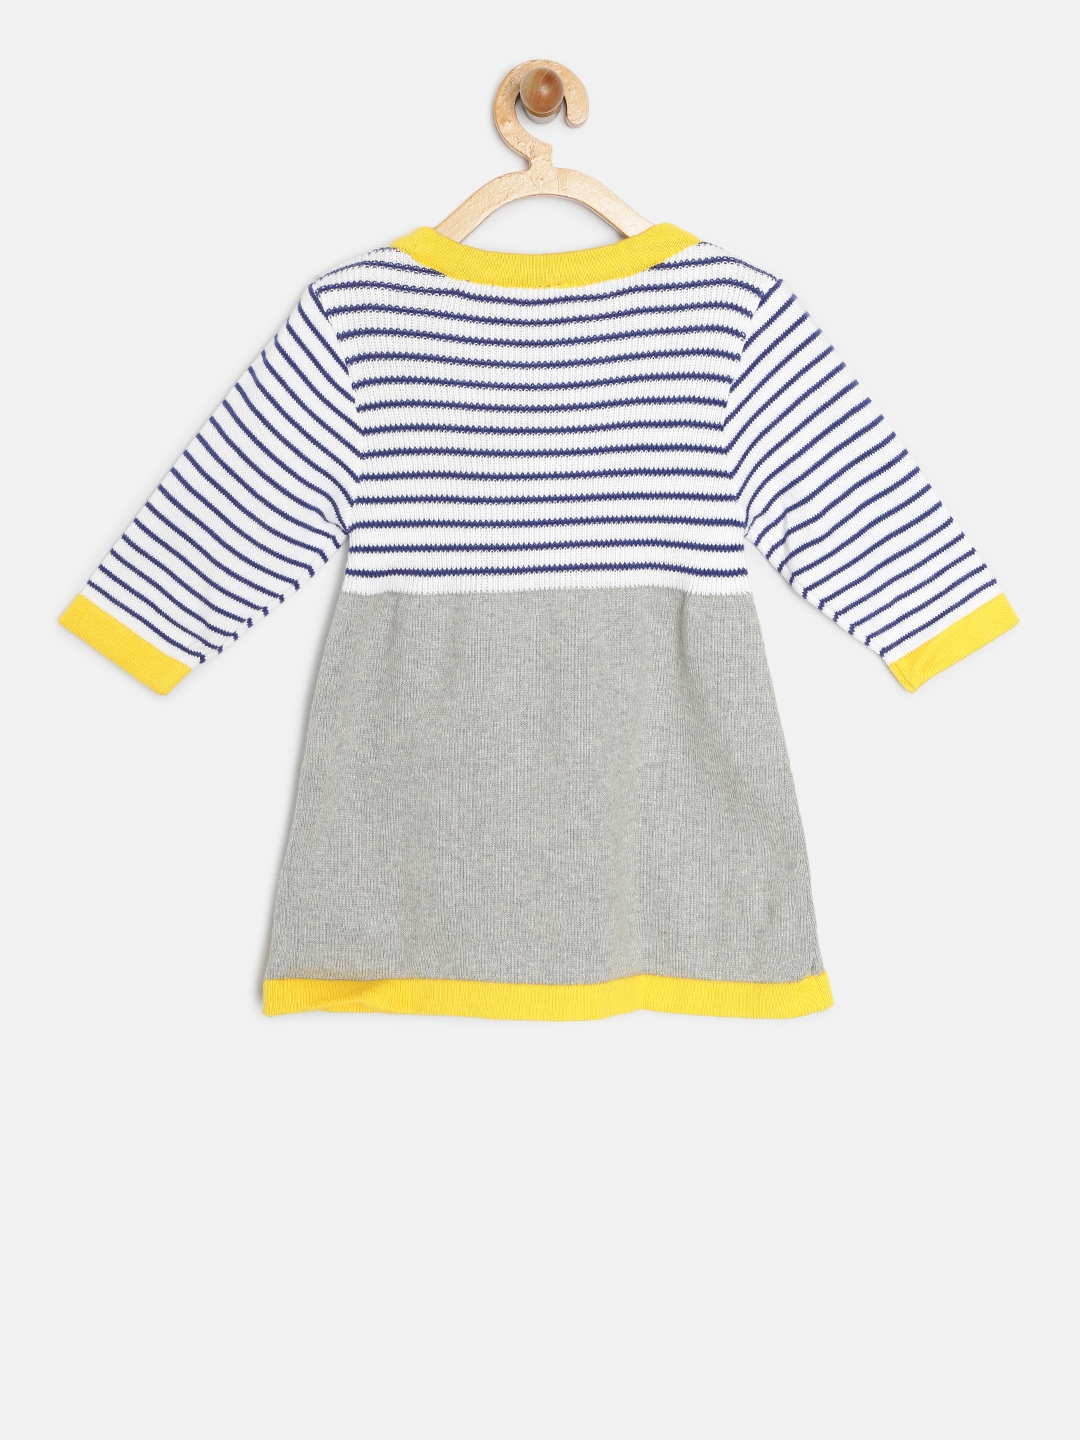 f095c7ada2fb Buy Blue Giraffe Girls Grey   Off White Striped Sweater Dress ...